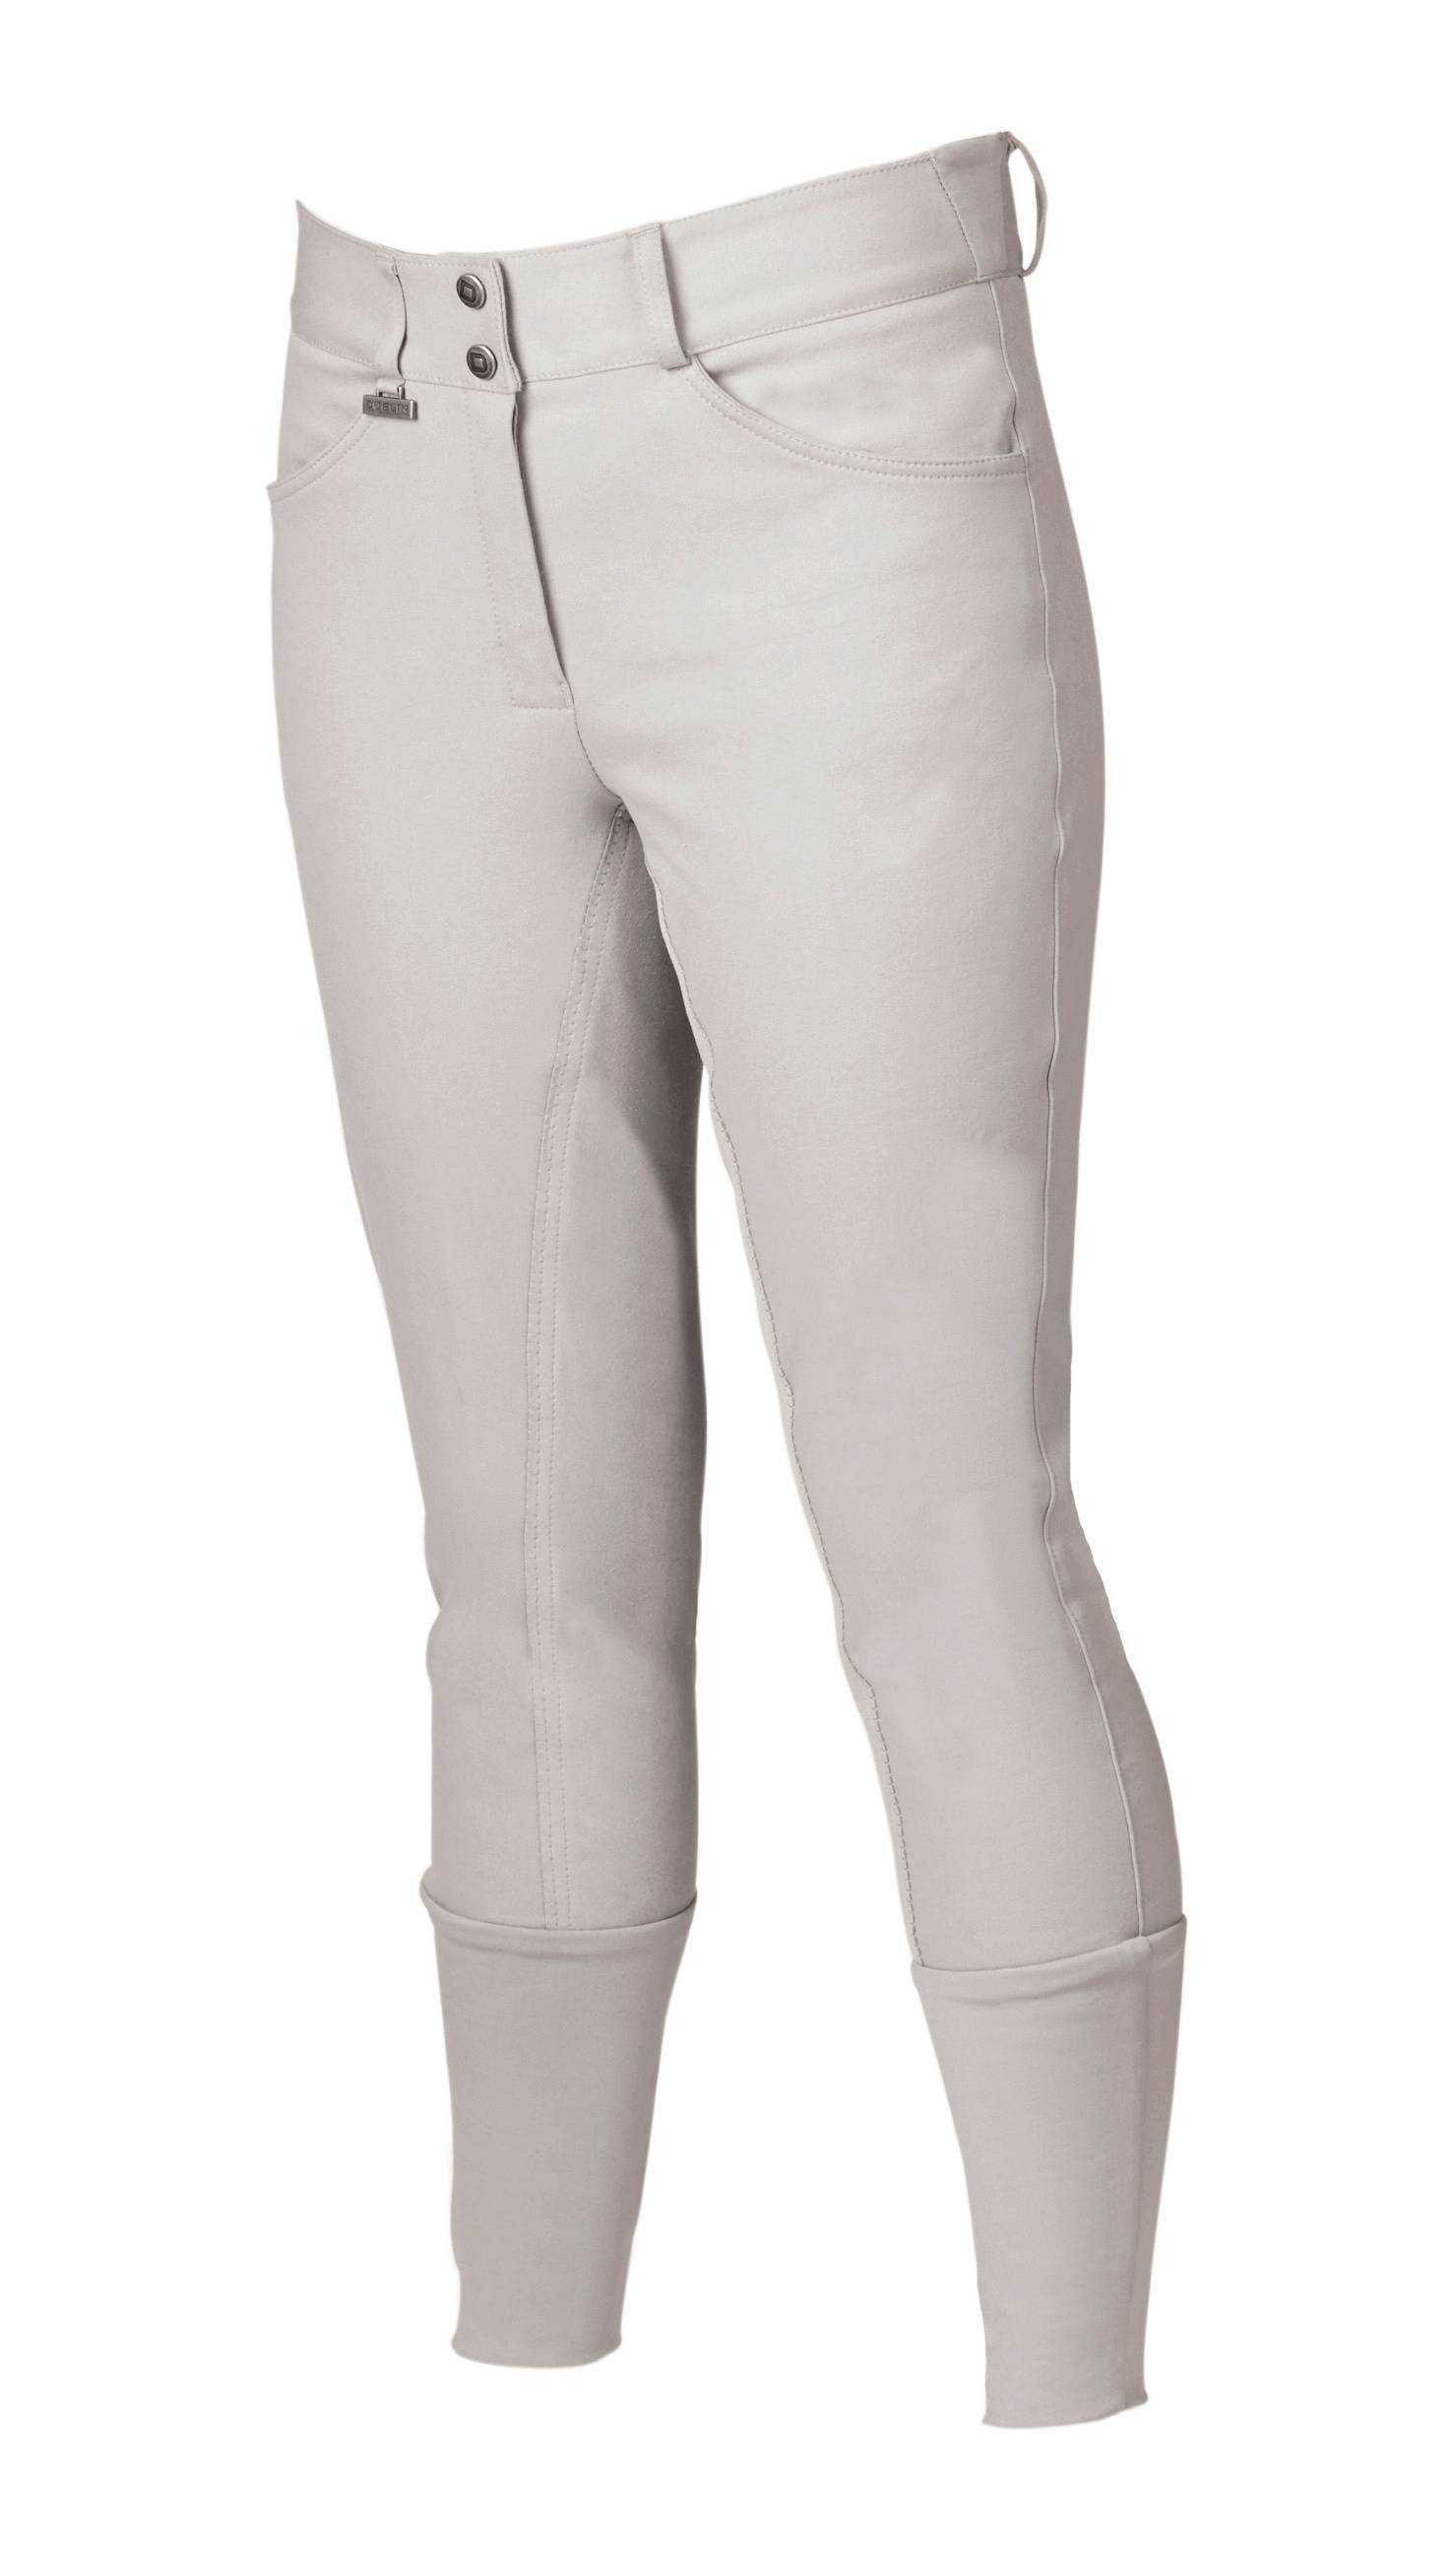 Dublin Active Shapely Breeches - Ladies, Full Seat